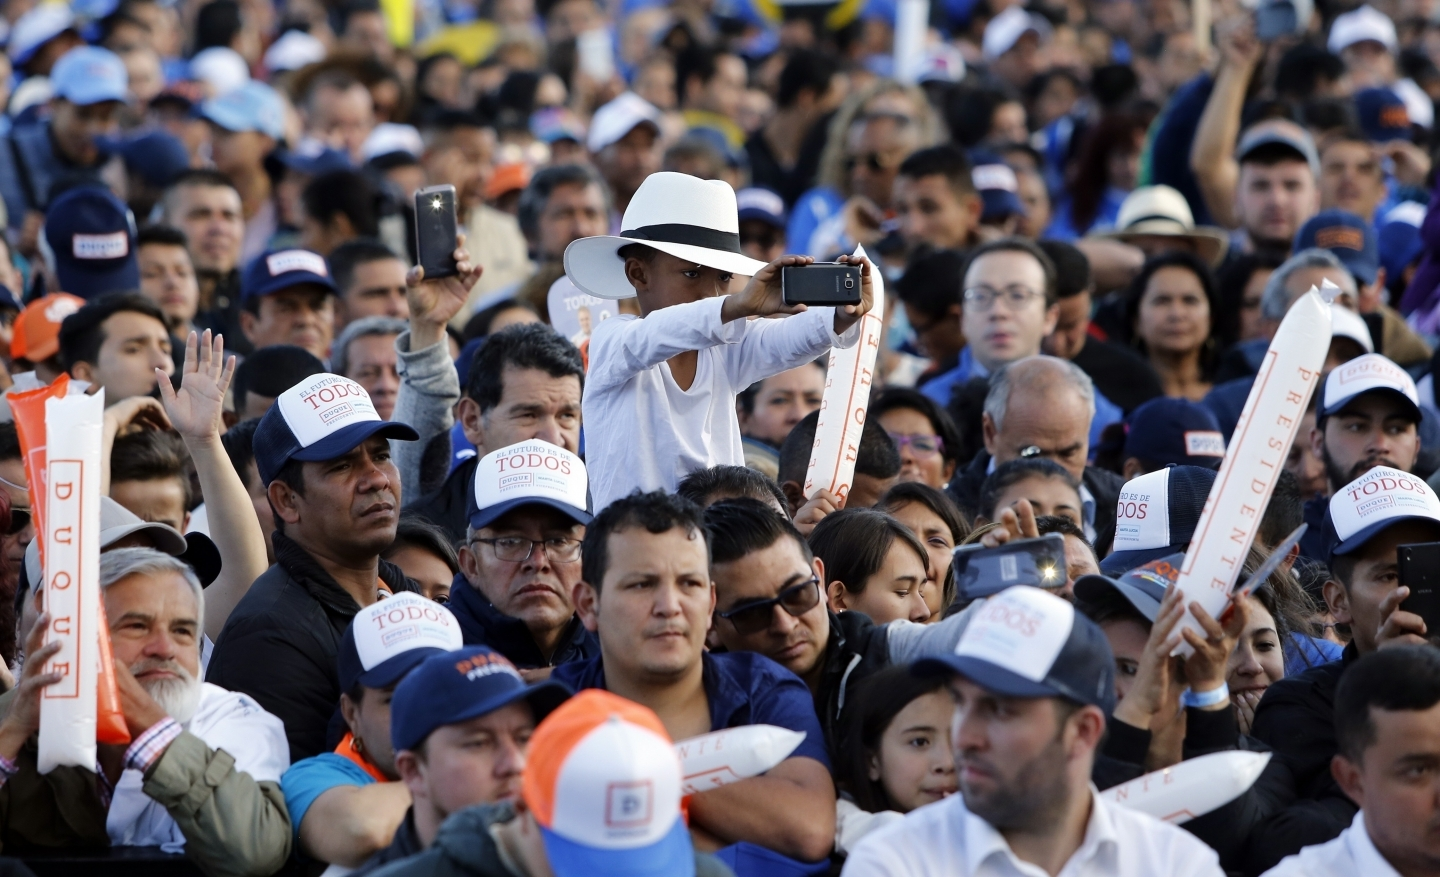 Supporters listen to Ivan Duque, presidential candidate for Democratic Center party, during his campaign rally in Bogota, Colombia on May 20, 2018. (AP Photo/Fernando Vergara)